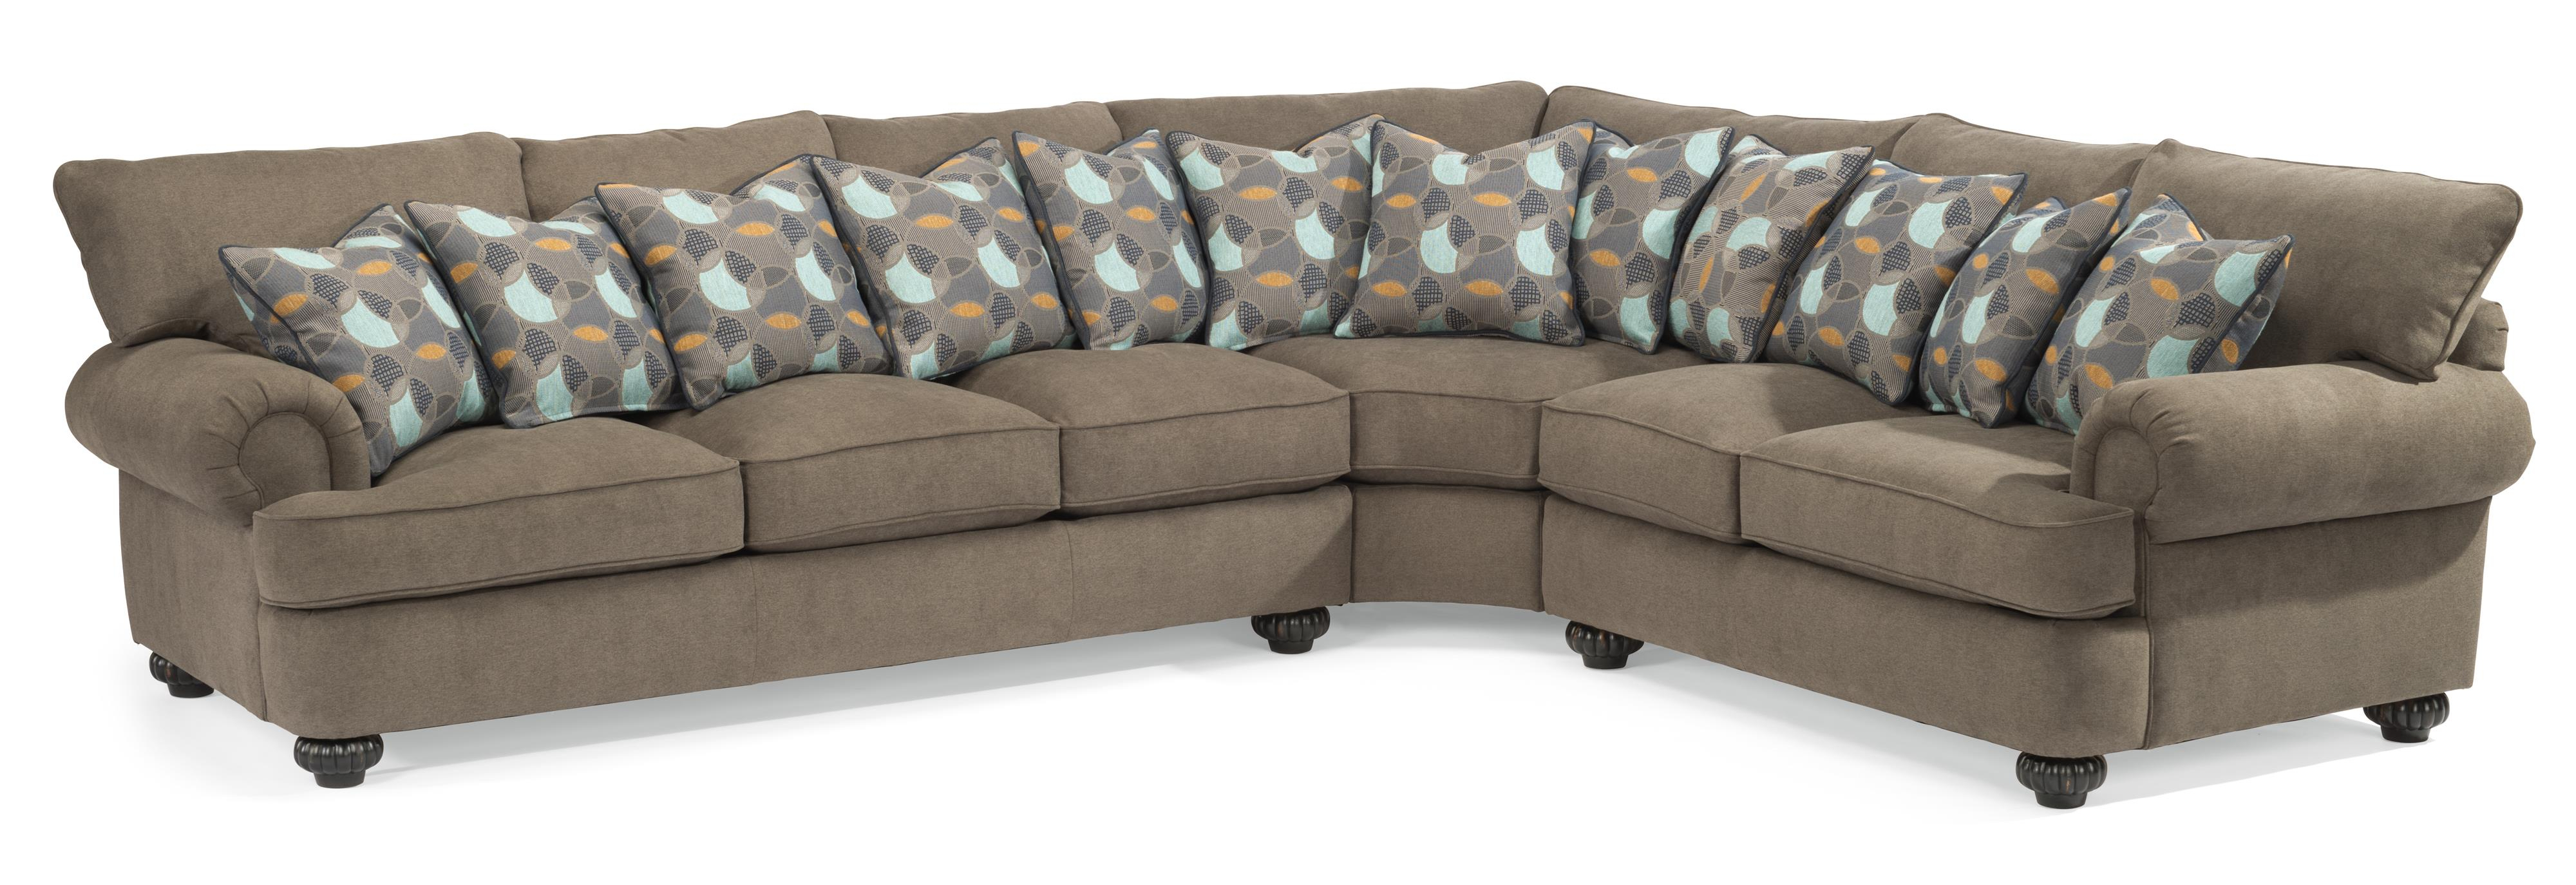 Flexsteel Patterson Three Piece Sectional Sofa With Rolled Arms Within Patterson Ii Arm Sofa Chairs (View 3 of 25)